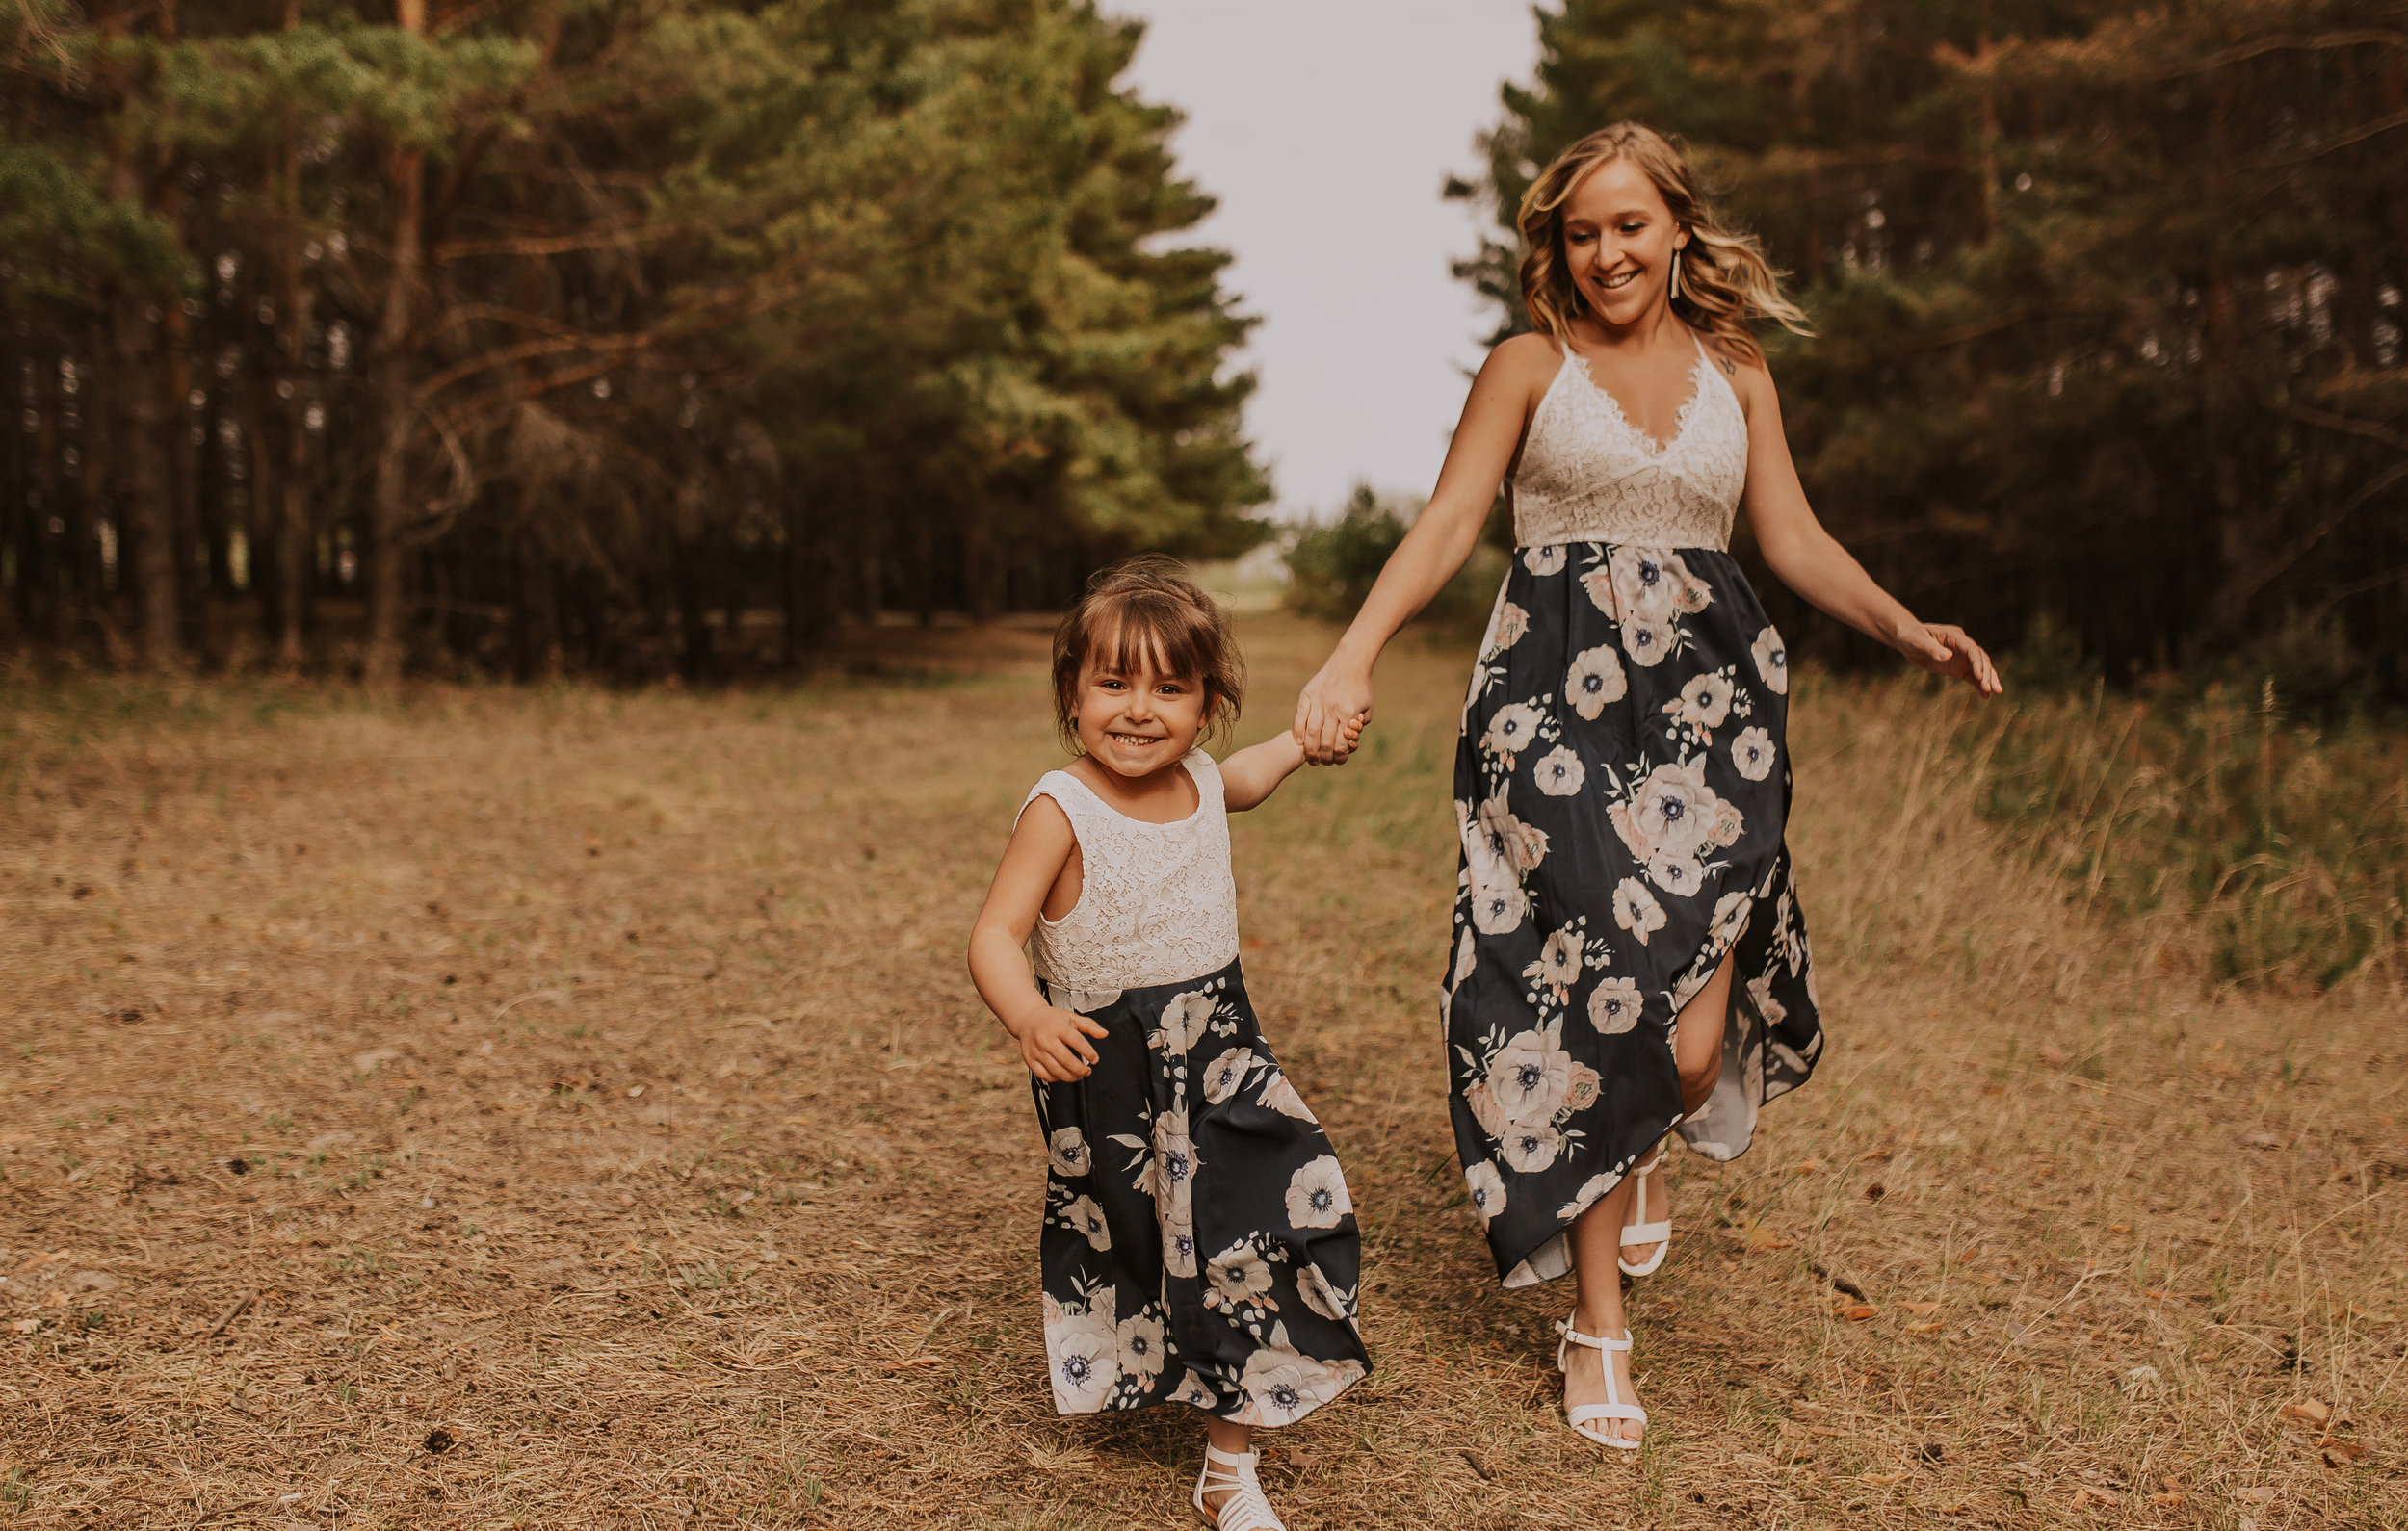 Chantal+Izzy_FamilySession_9.jpg